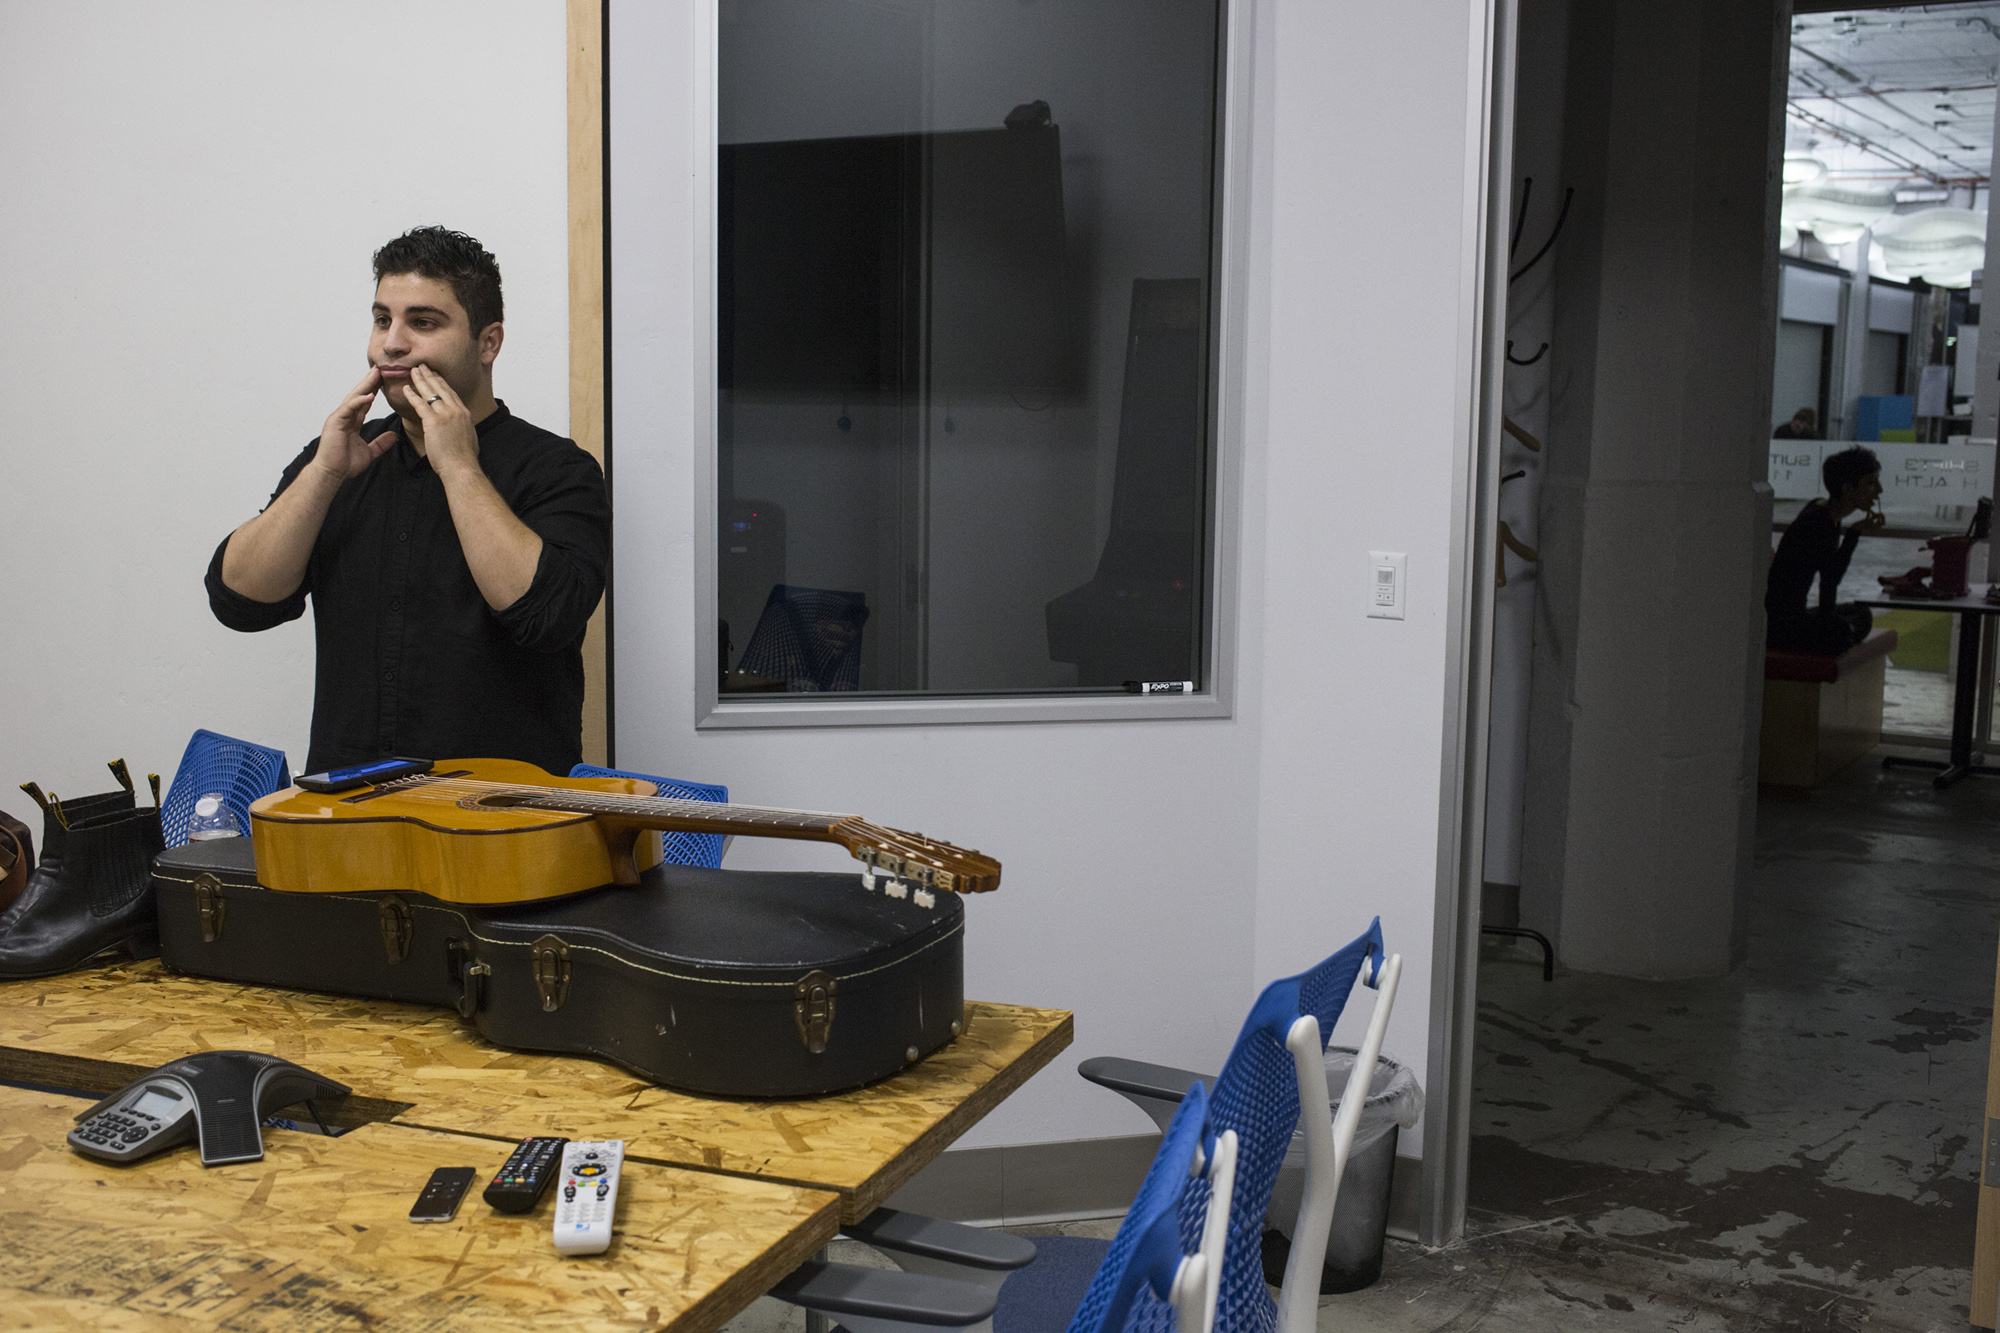 Omar performs music he calls nuevo mariachi. It is approach to reimagining the traditional Mexican music for his experience as a third generation Mexican-American from California's Central Valley. (Brittany Greeson/The GroundTruth Project)